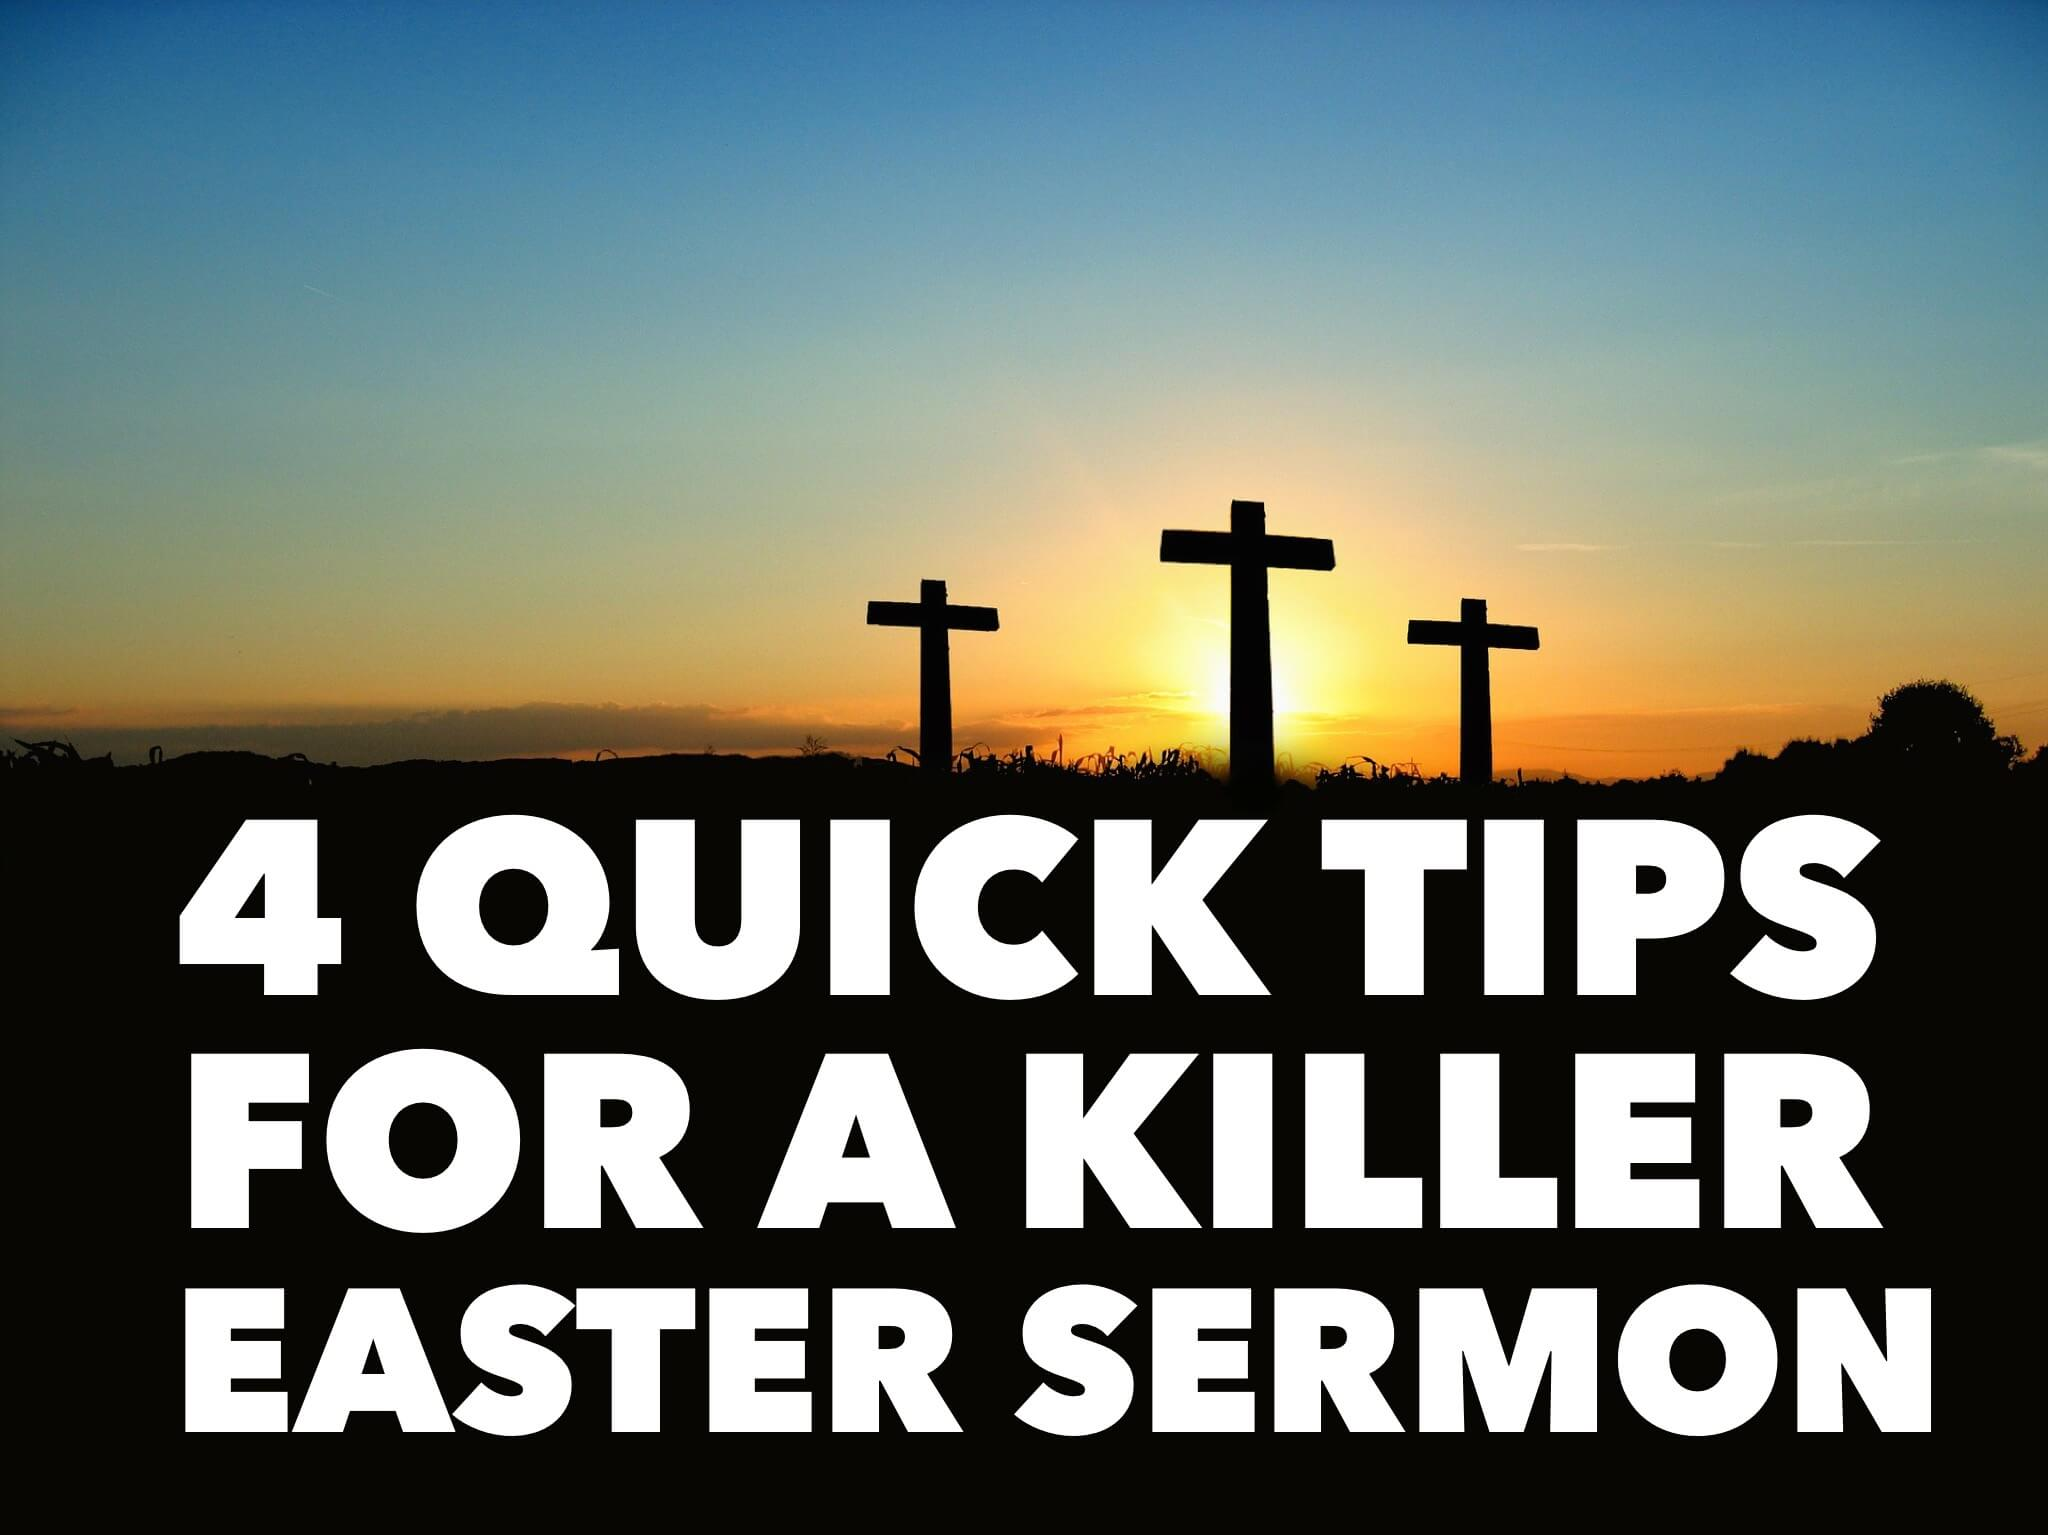 4 Quick Tips For a Killer Easter Sermon